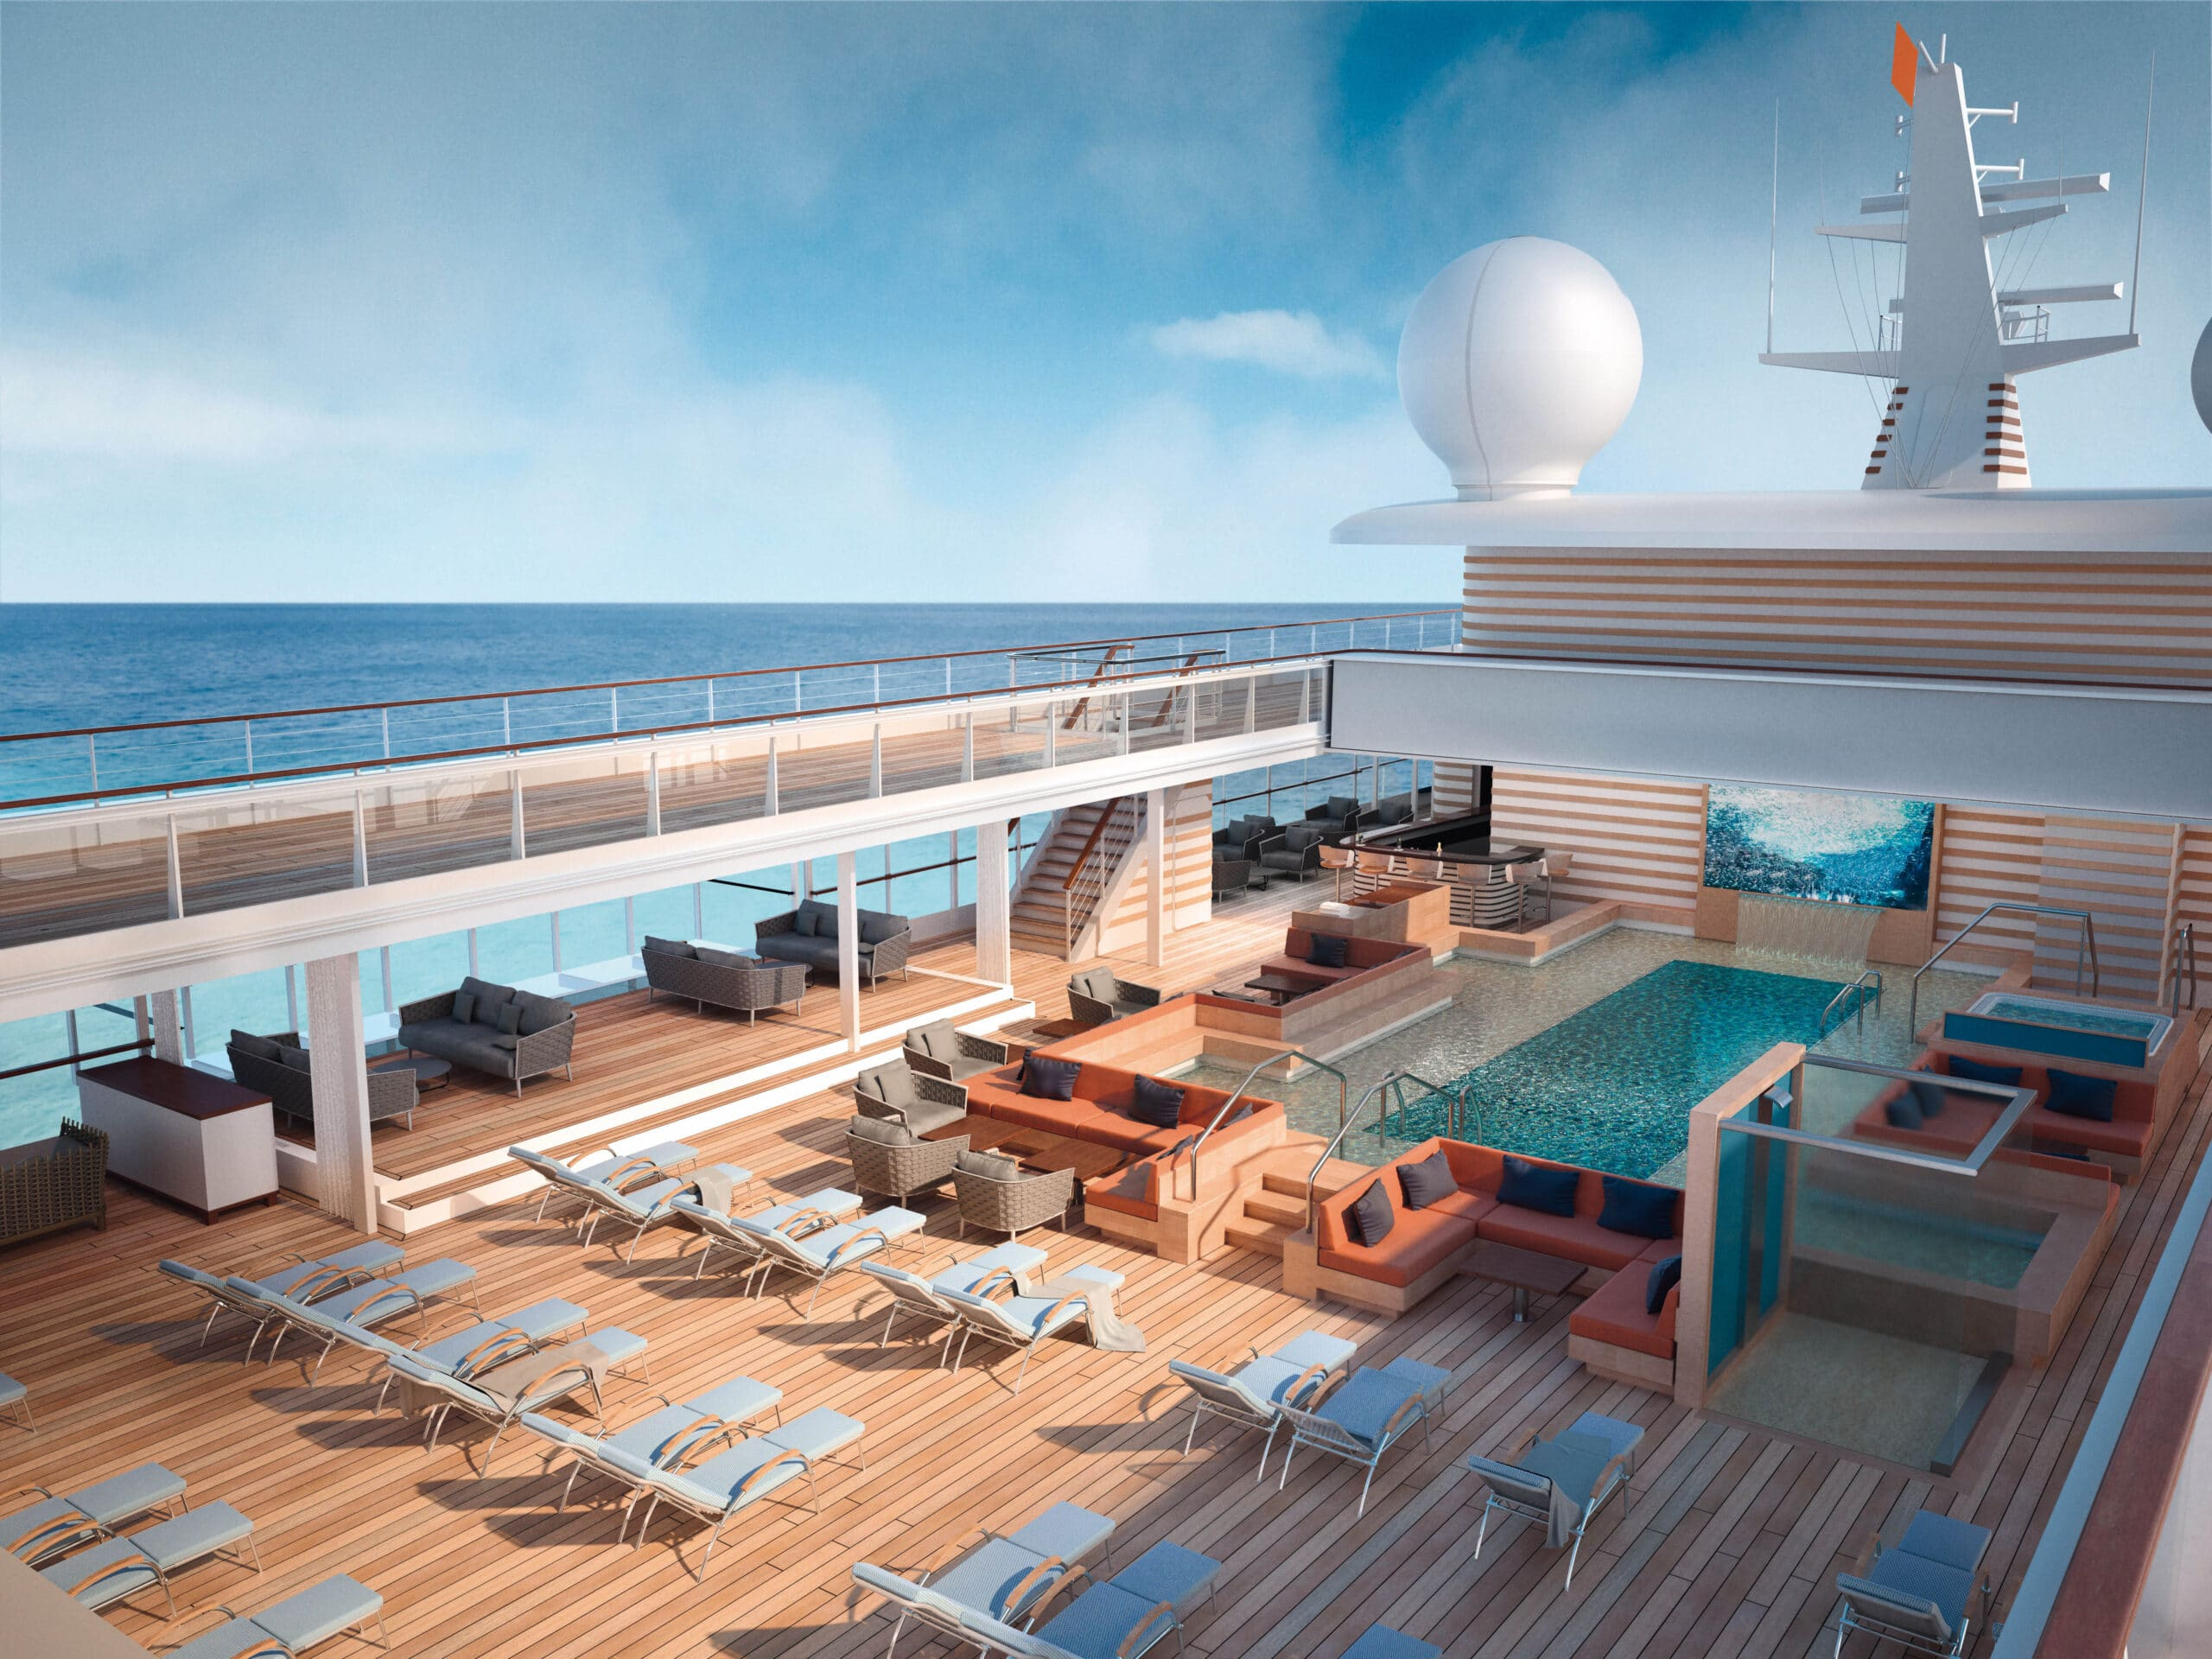 Cruiseschip-Hanseatic Nature-Hapag-Lloyd Cruises-Pool Deck